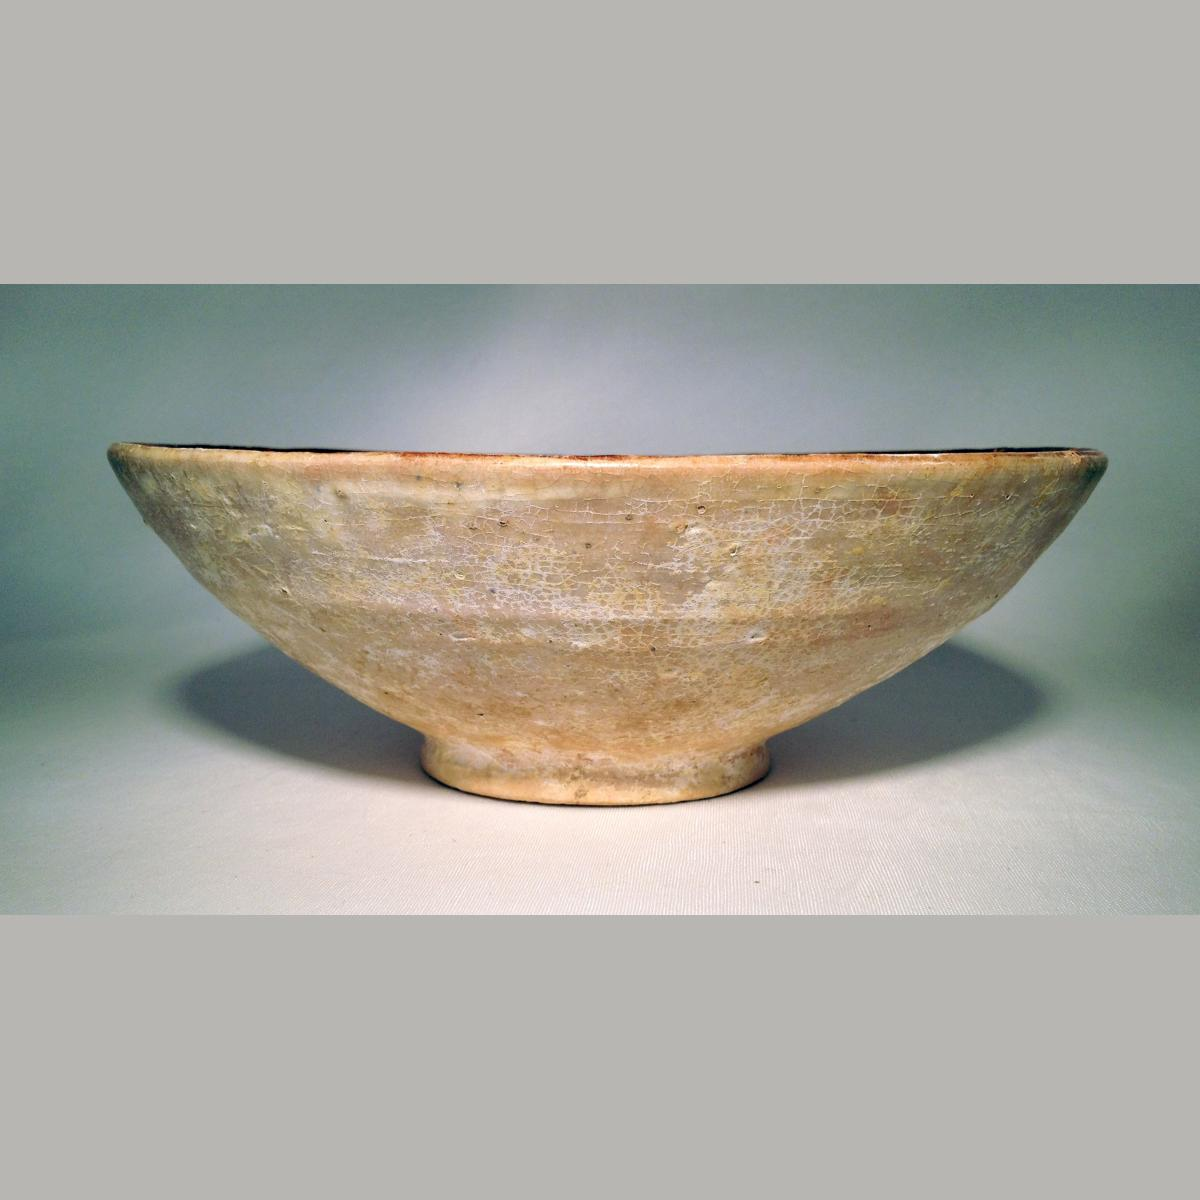 Egypt Bowl | Bowl brought back from Egypt after WWII by my ... |Egyption Bowls